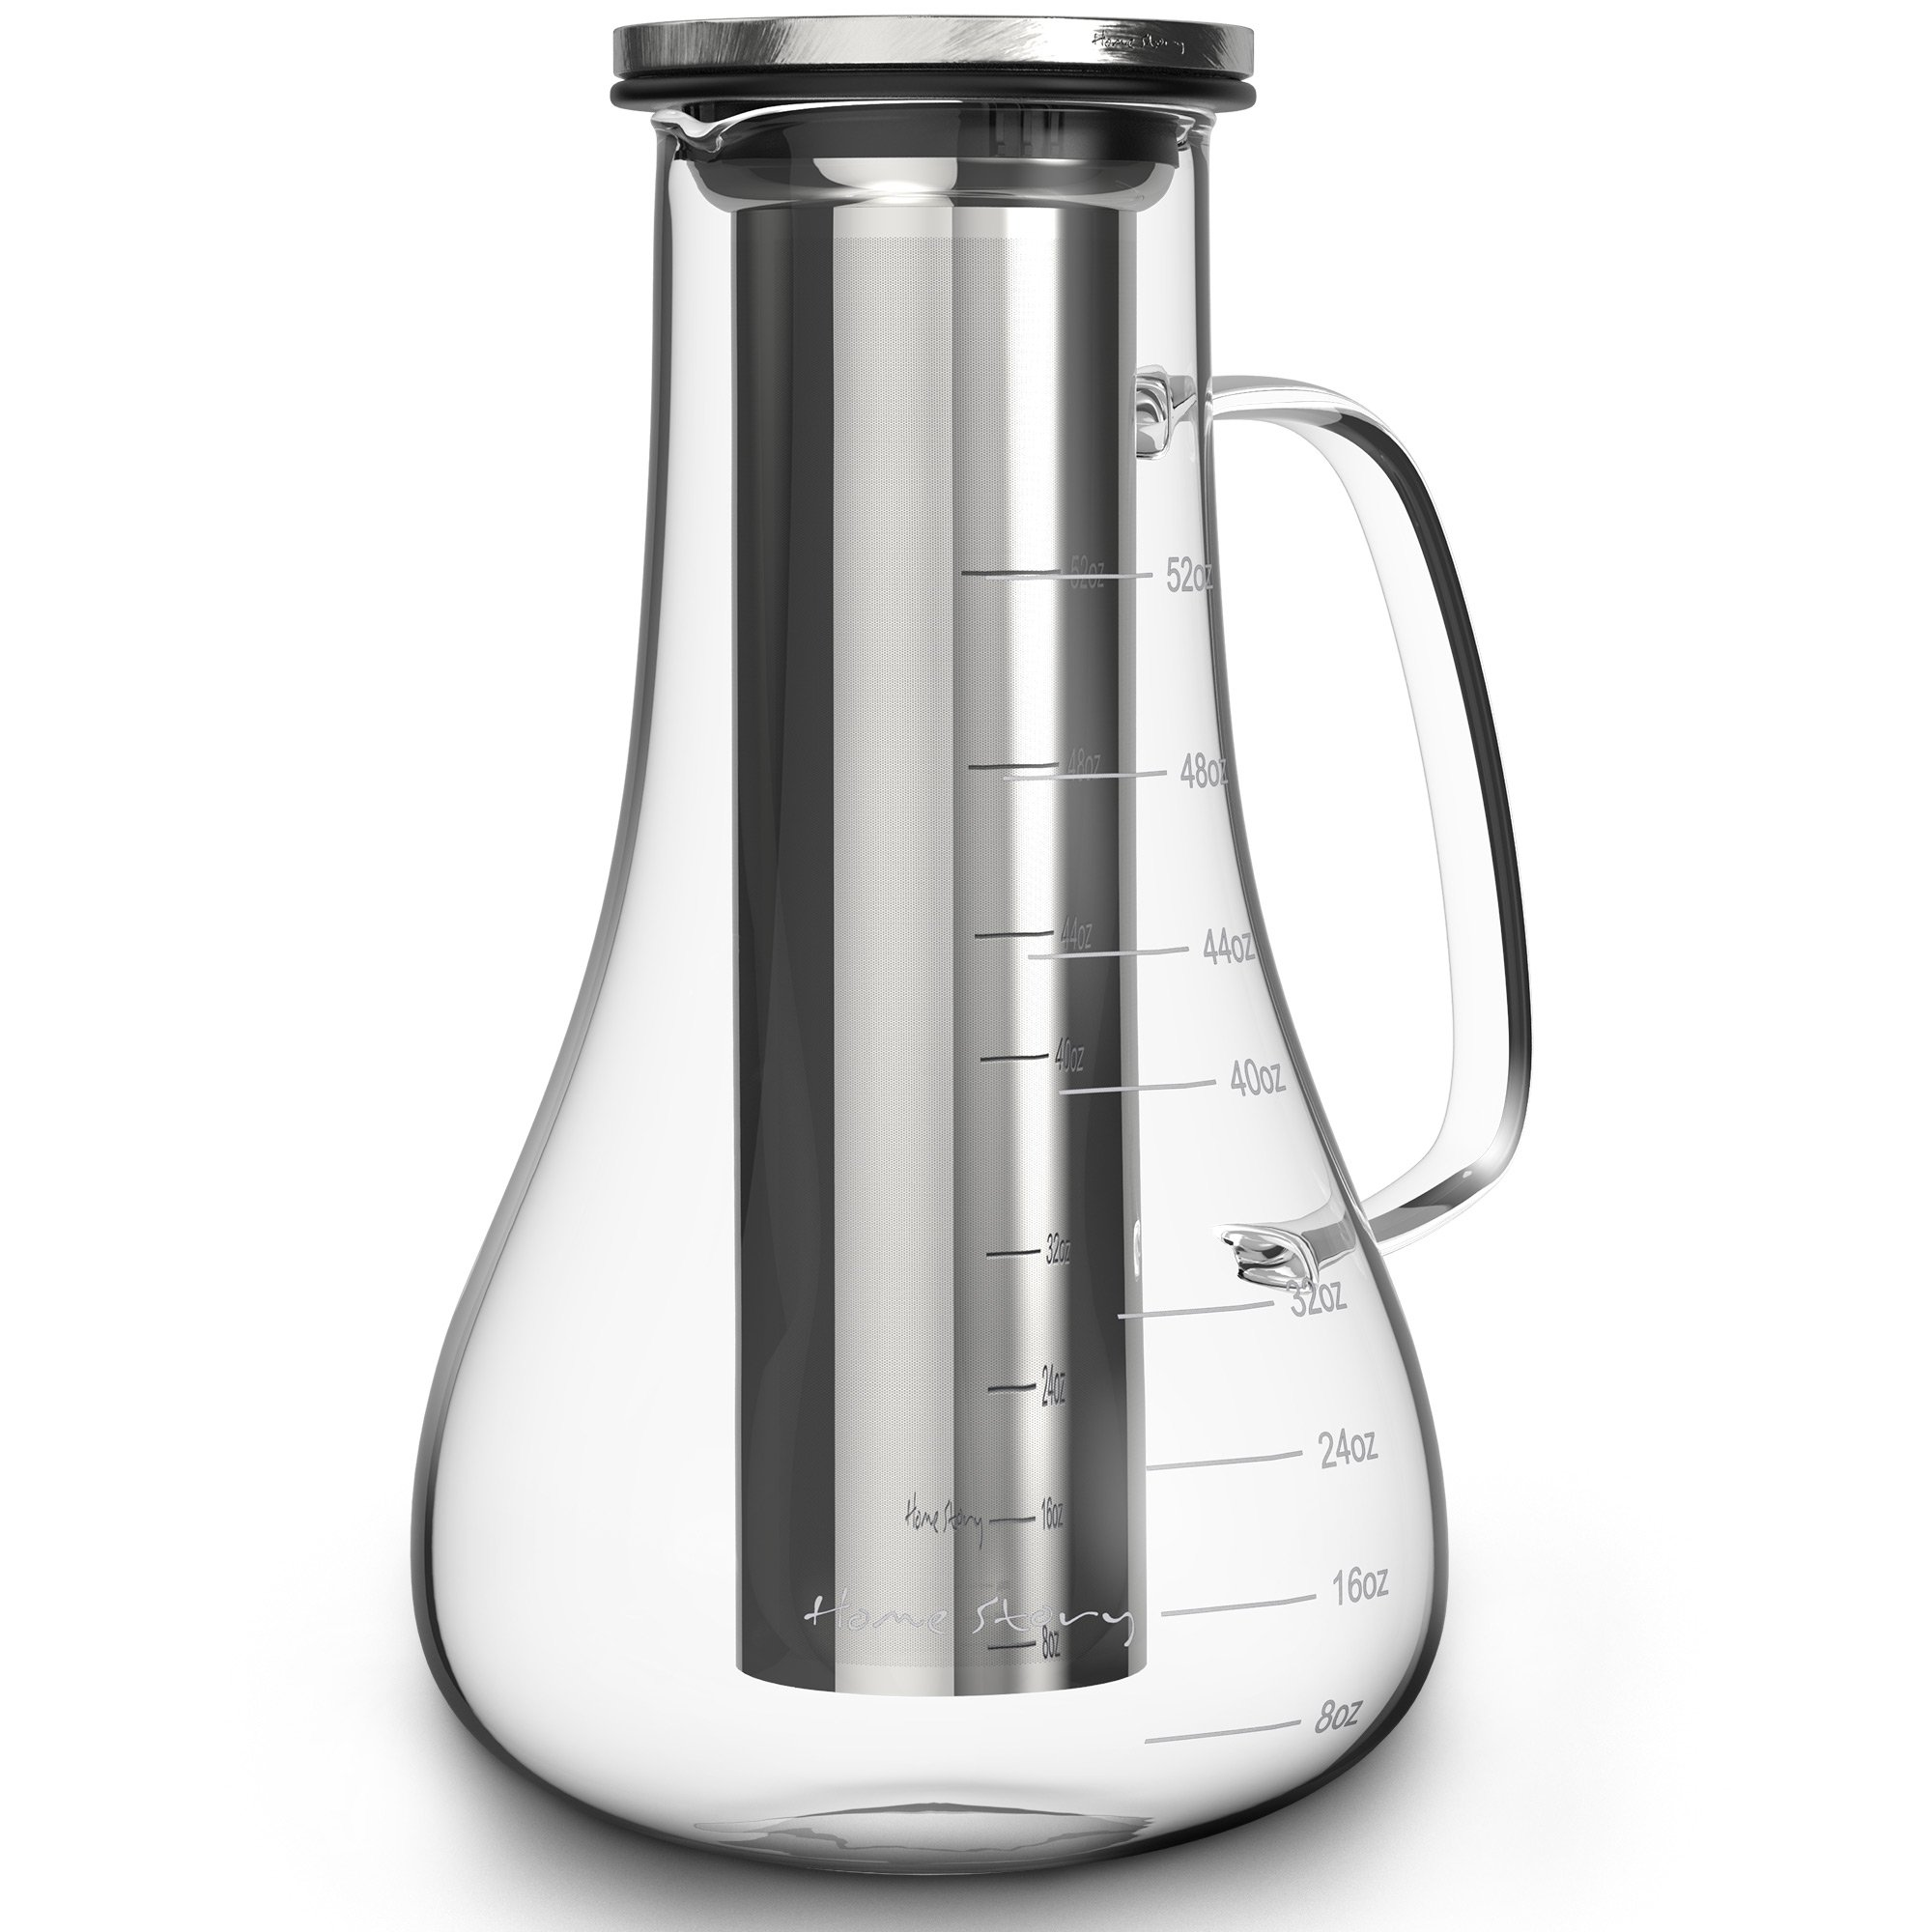 Cold Brew Coffee Maker - Glass Cold Brew Maker Pitcher Kit - 52 oz Hot Iced Tea Infuser Pot - Works even as Large Cold Press Coffee Maker Brewer or Iced Coffee Carafe - Stainless Steel Brew Filter